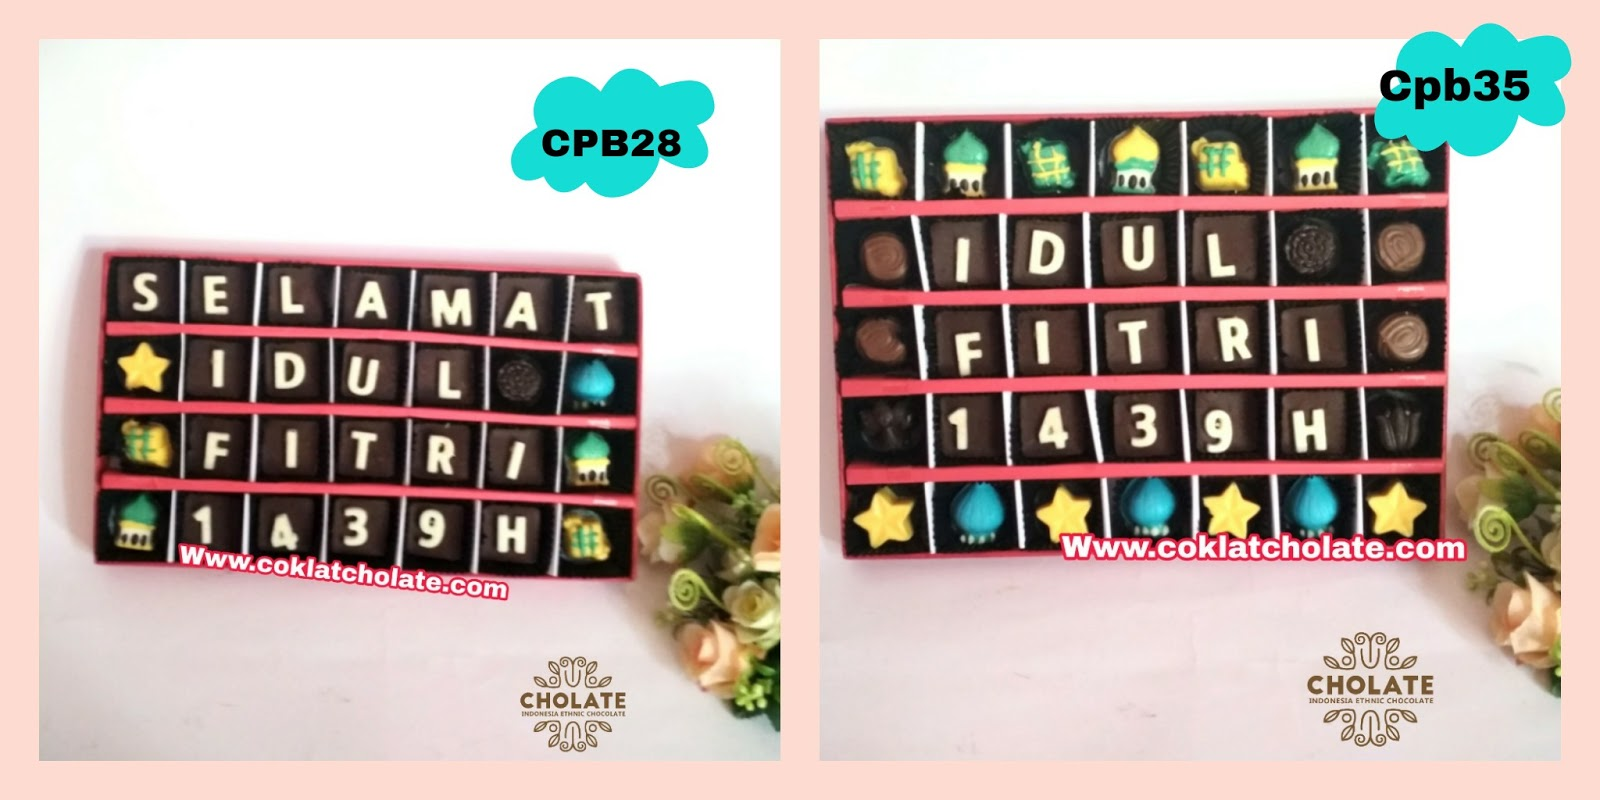 Coklat Karakter Love Praline Hello Kitty Kurma Mete Isi Almond Naaina Lezato Mr Choco